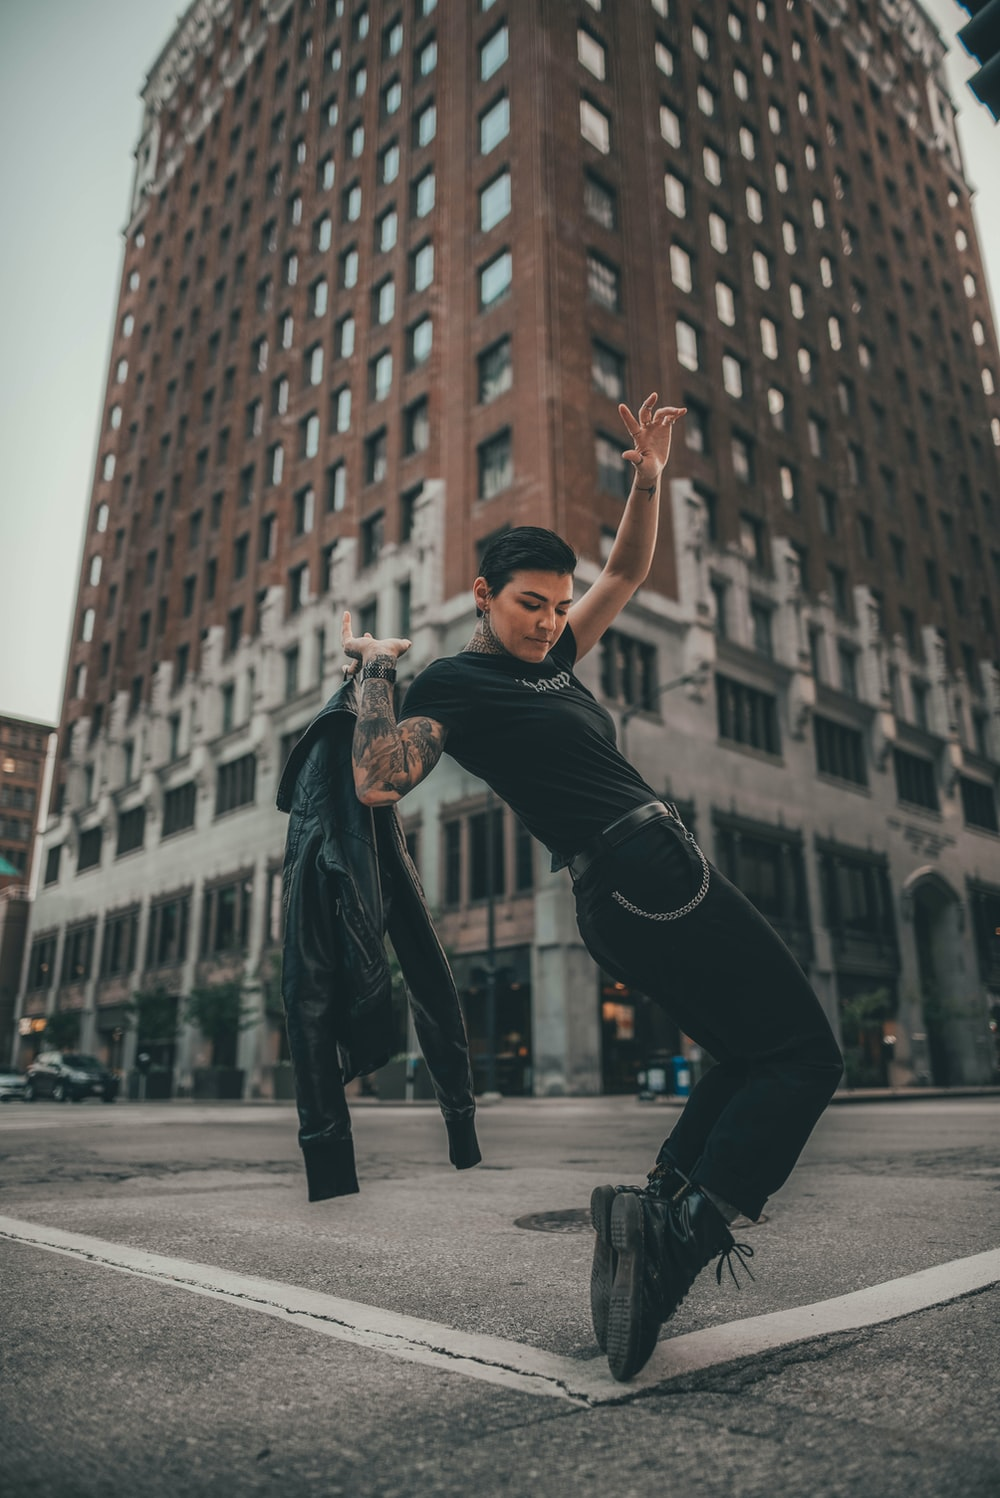 man in black t-shirt and black pants jumping on gray concrete floor during daytime